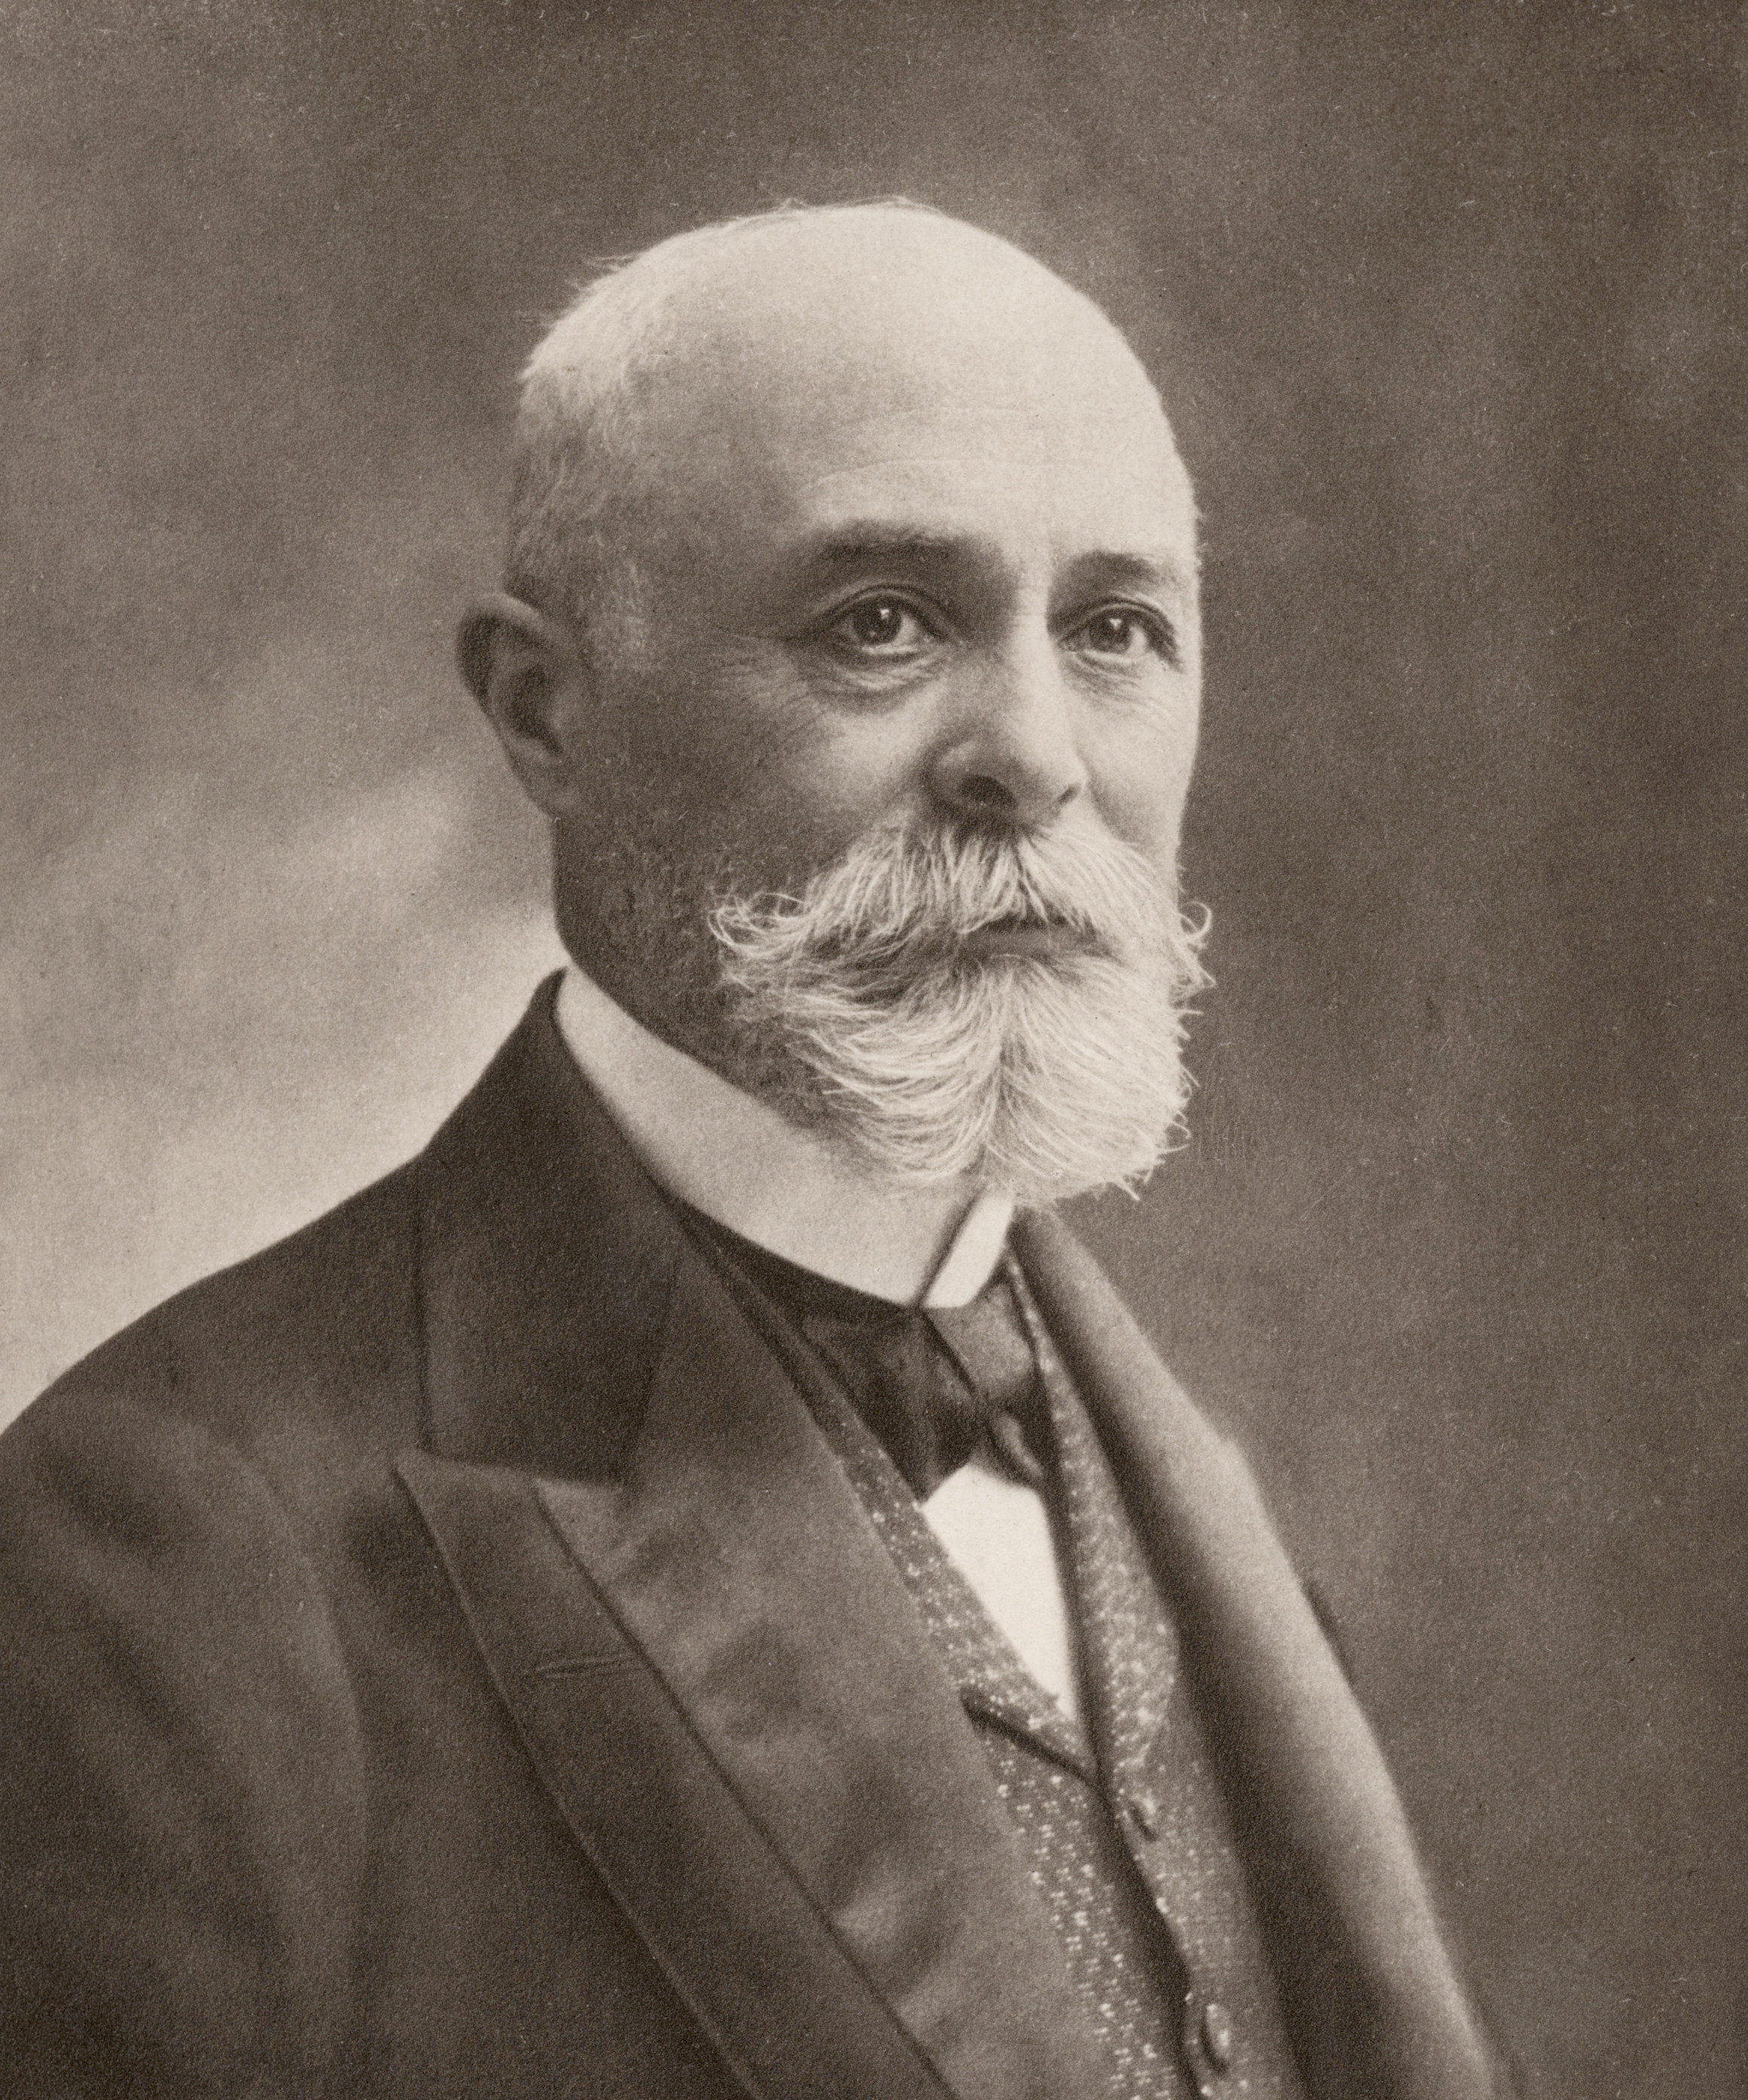 Image of Henri Becquerel from Wikidata